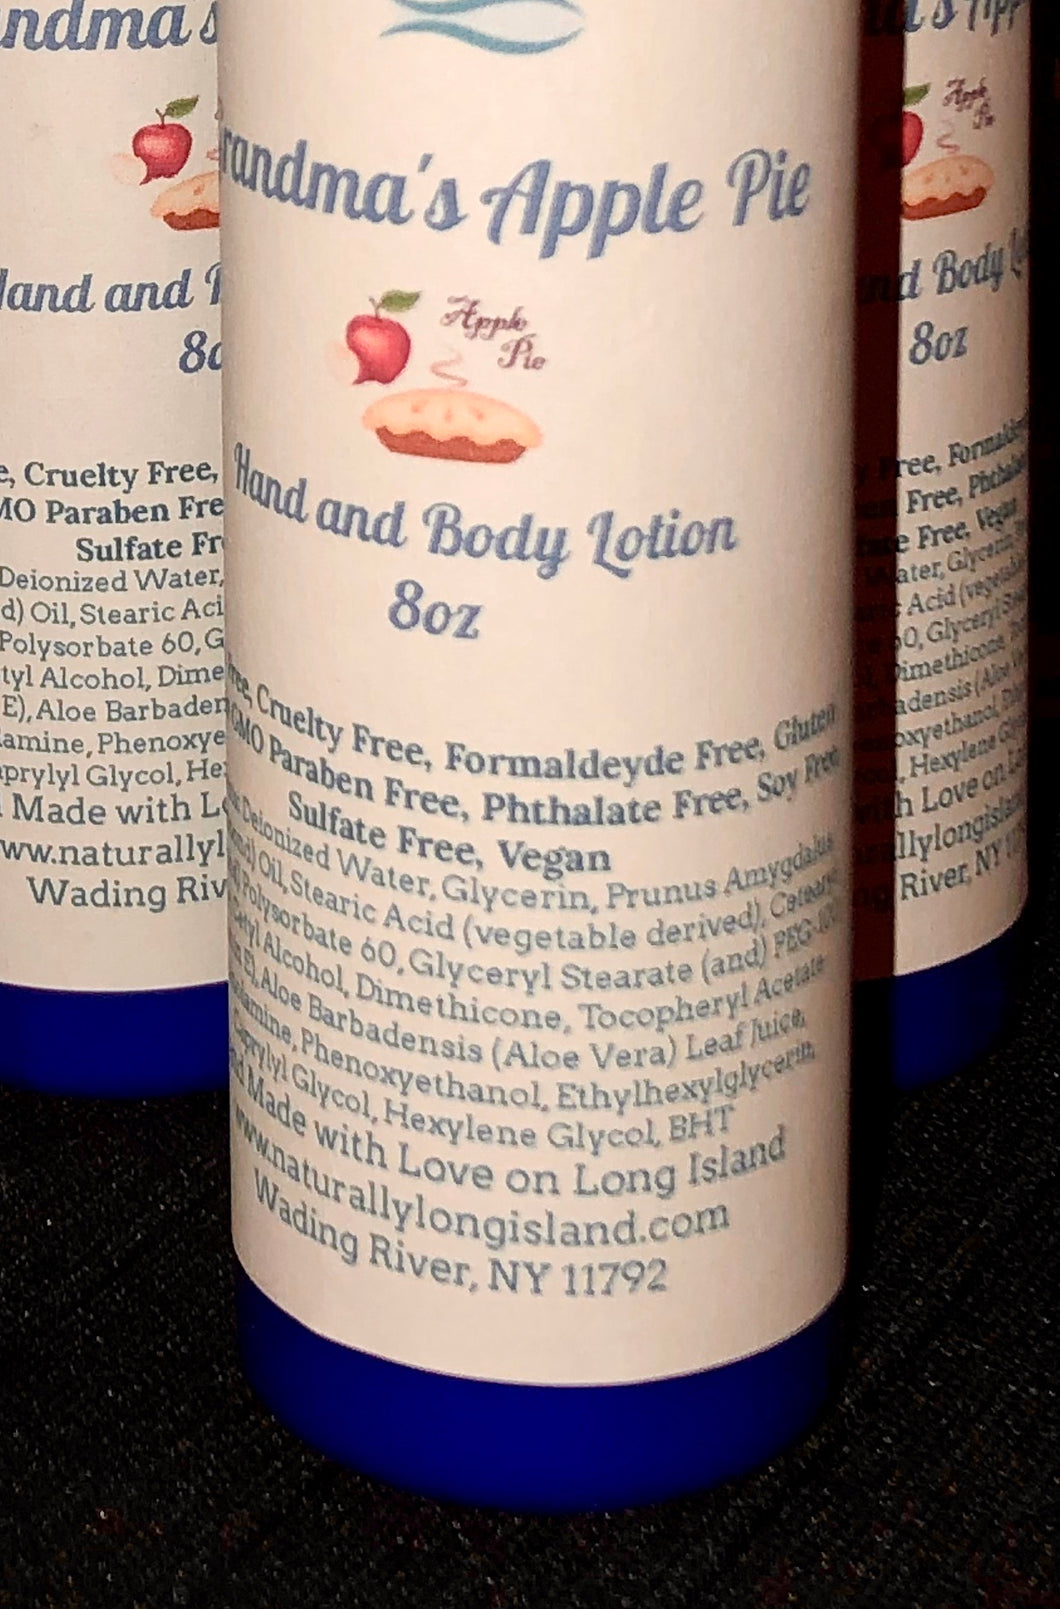 Grandma's Apple Pie Hand and Body Lotion - Pale Ale Boutique